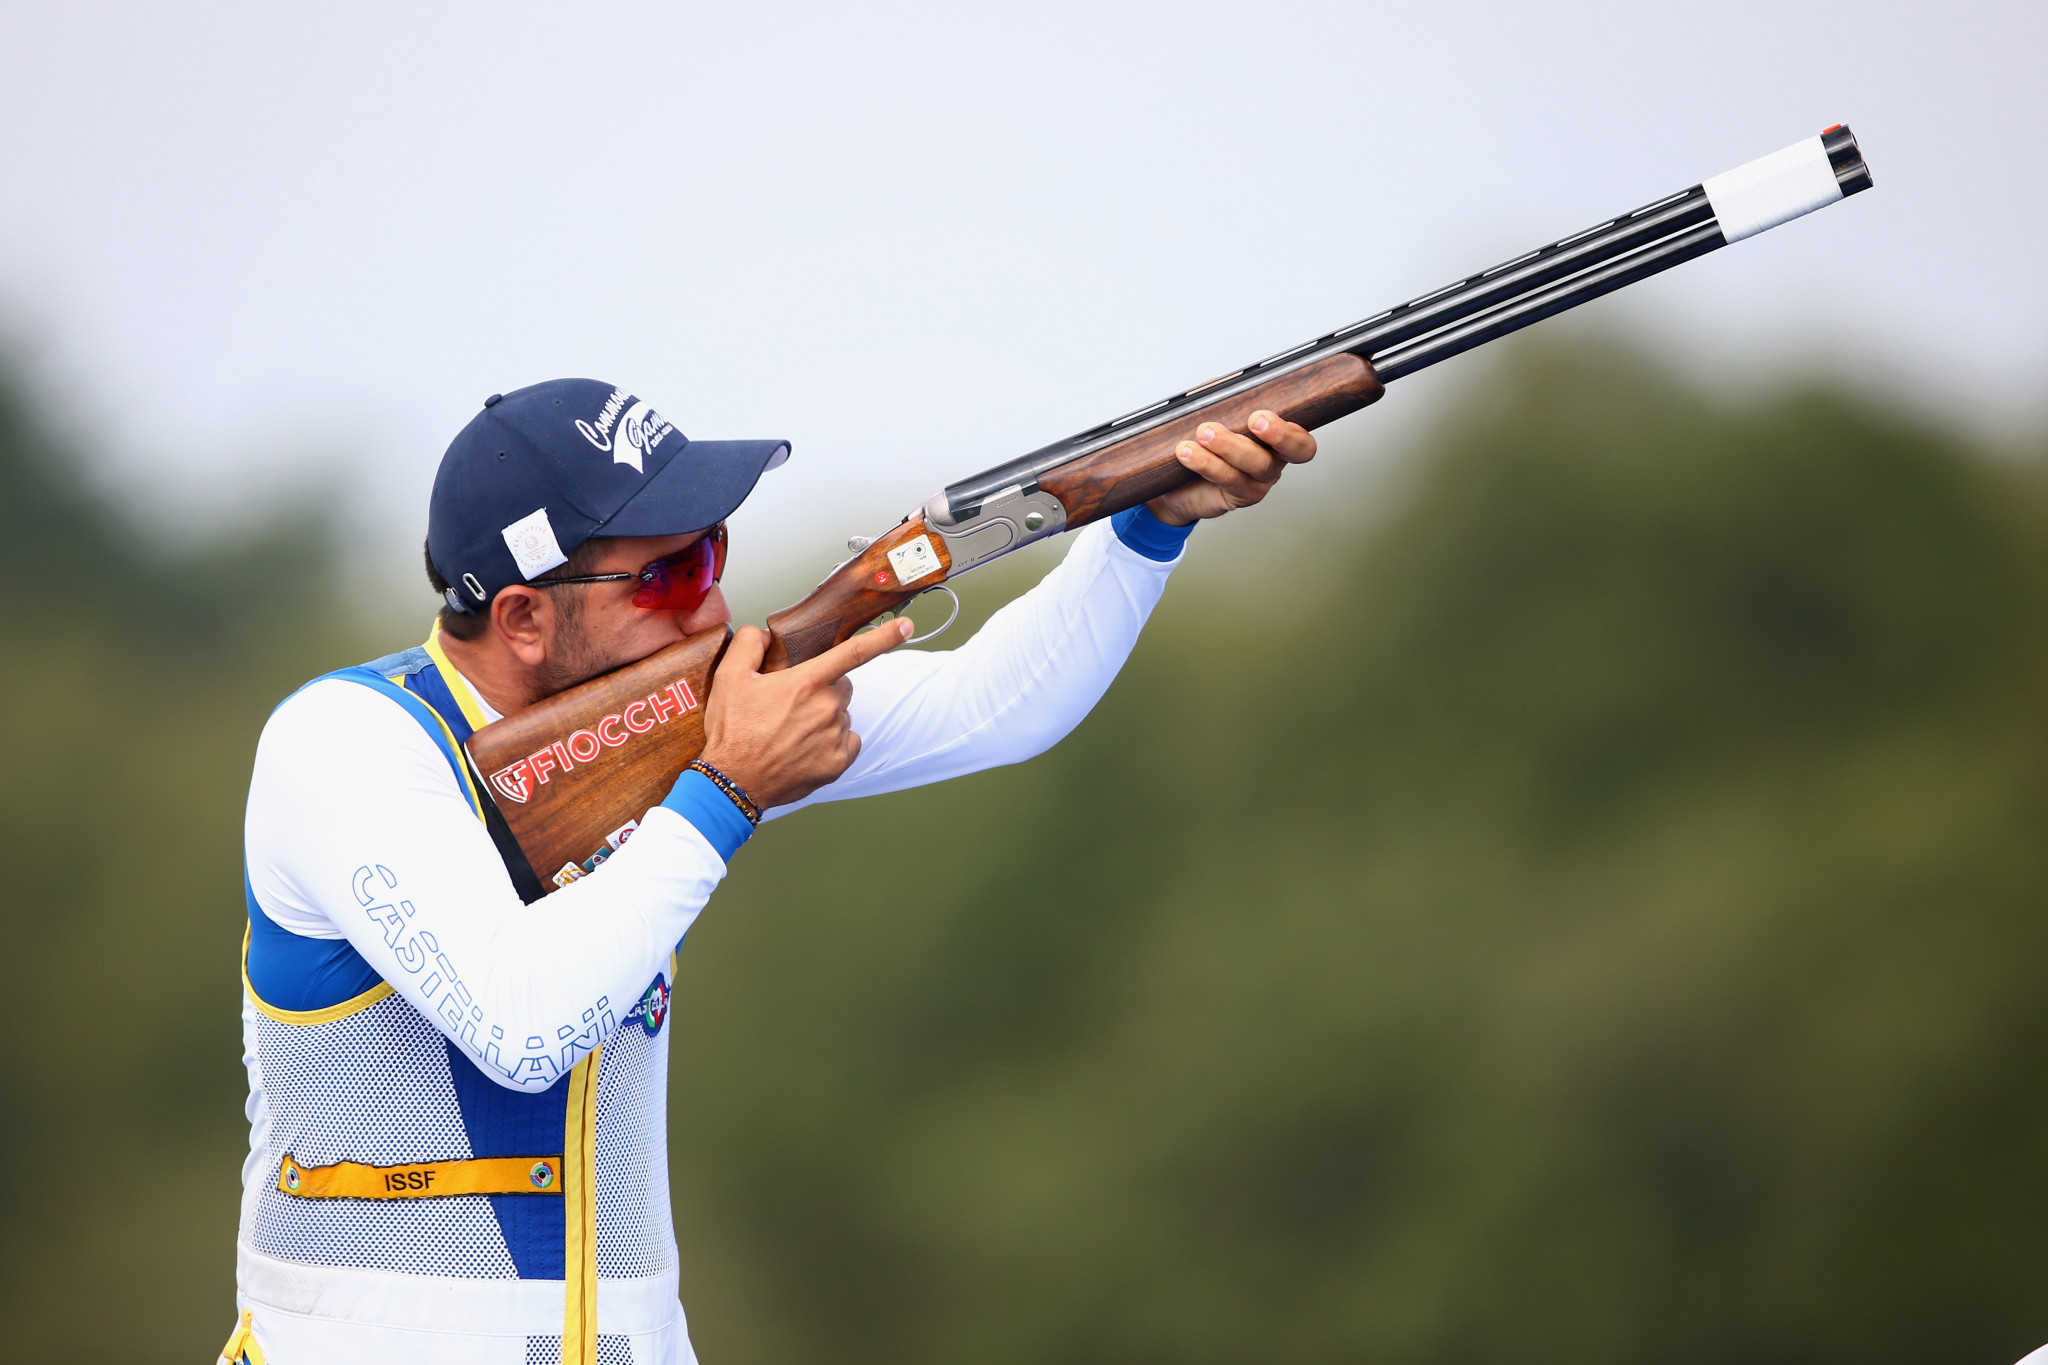 Georgios Achilleos will lead Cyprus' shooting team at Gold Coast 2018 ©Getty Images